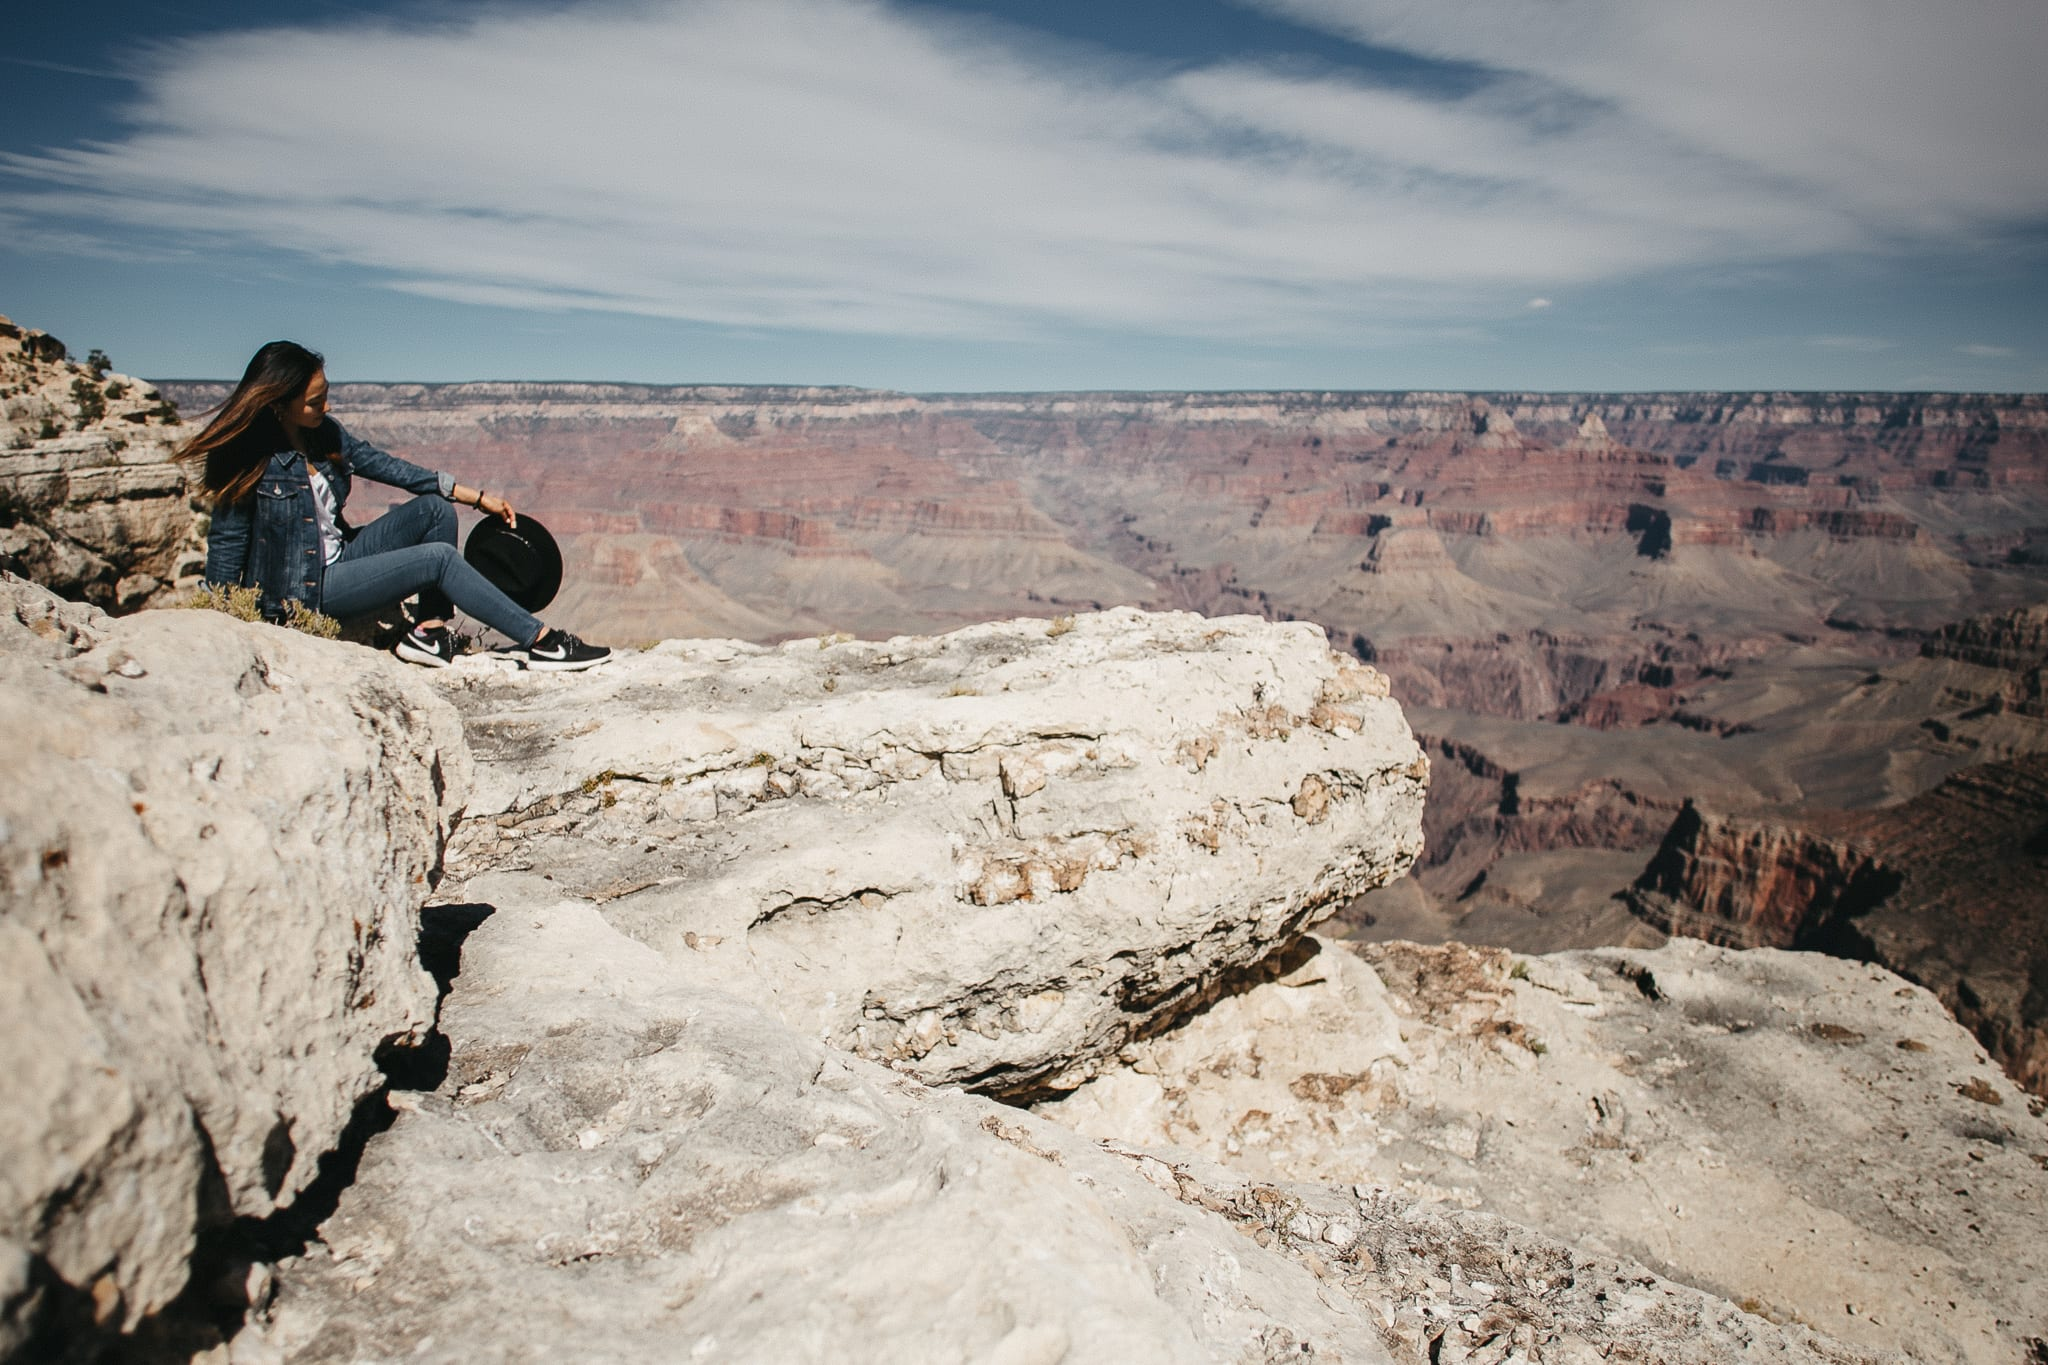 jc1-grand-canyon-arizona-lifestyle-portrait-photographer-6